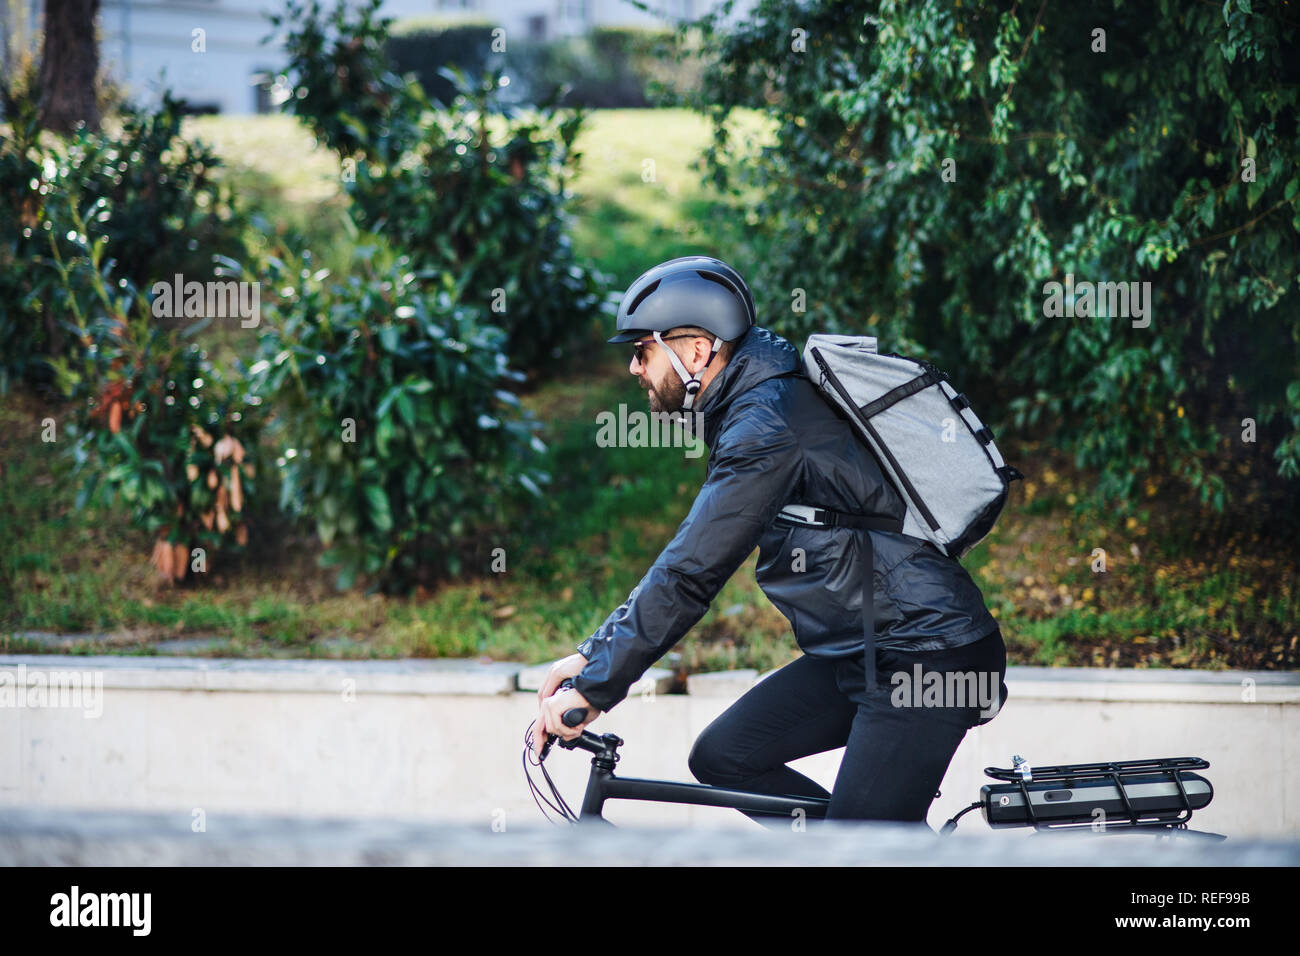 Male bicycle courier delivering packages in city. Copy space. Stock Photo